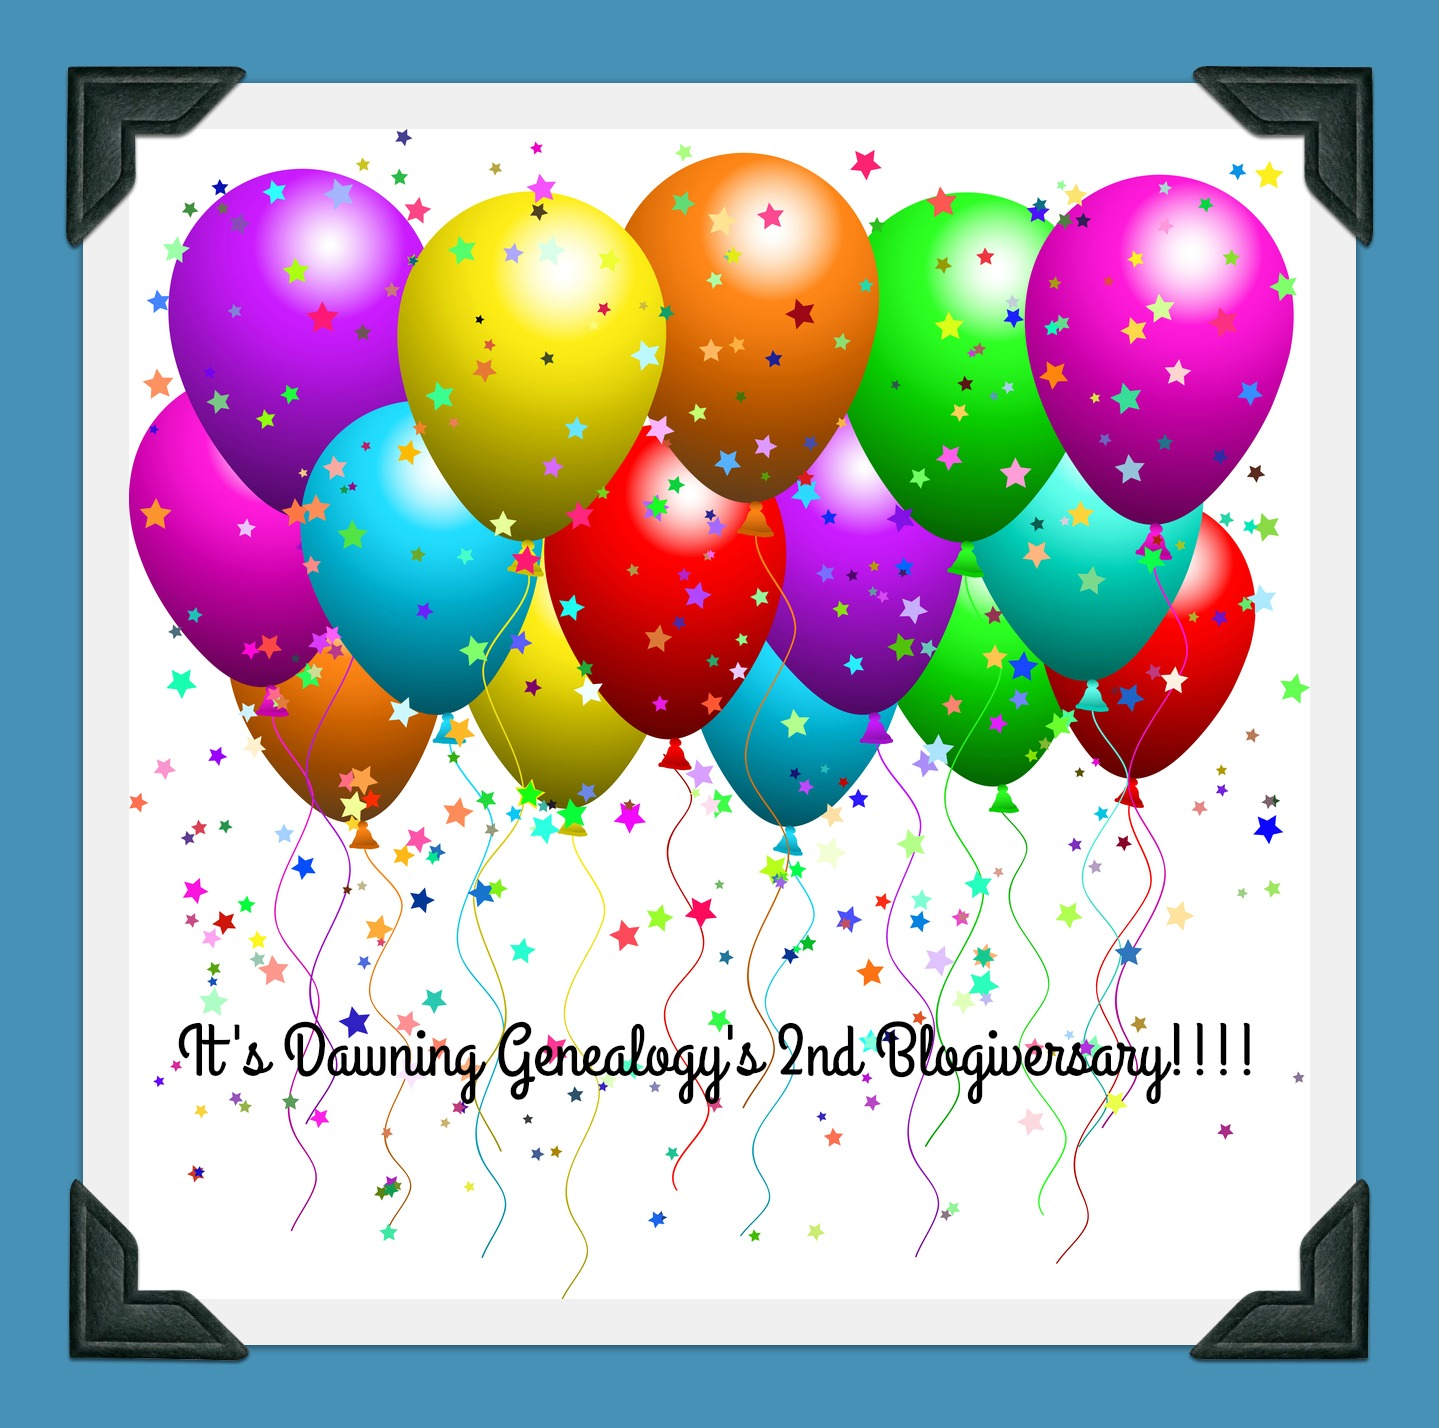 4 Years And Counting Quotes: Dawning Genealogy: It's My Blogiversary